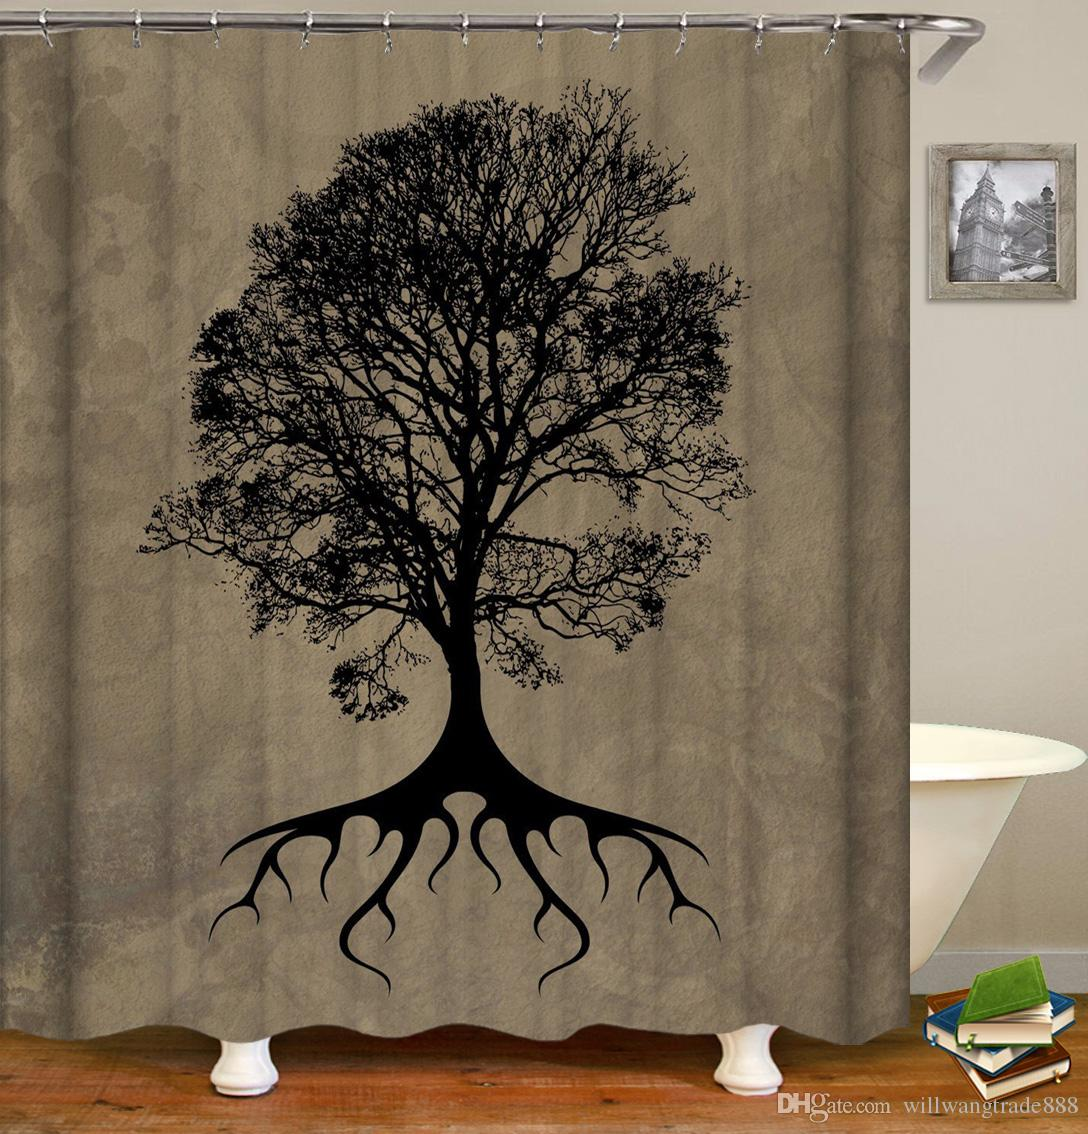 Waterproof Creative Landscape Trees Sunset Scenery Shower Curtains Digital Printing Bathroom Curtains With Rings 71x71inch